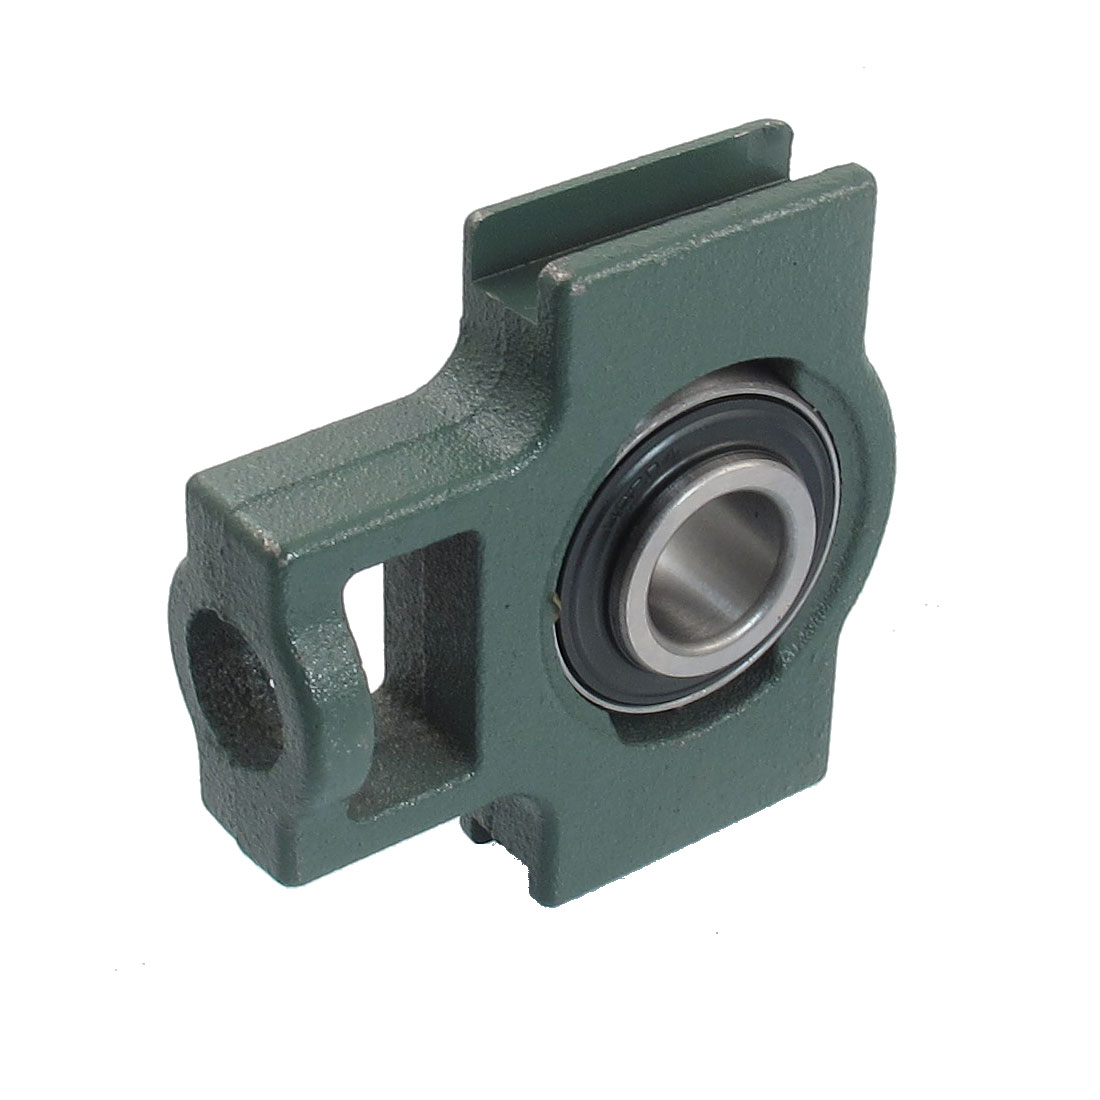 Uct204 20Mm Mounted Block Cast Housing Self-Aligning Pillow Bearing